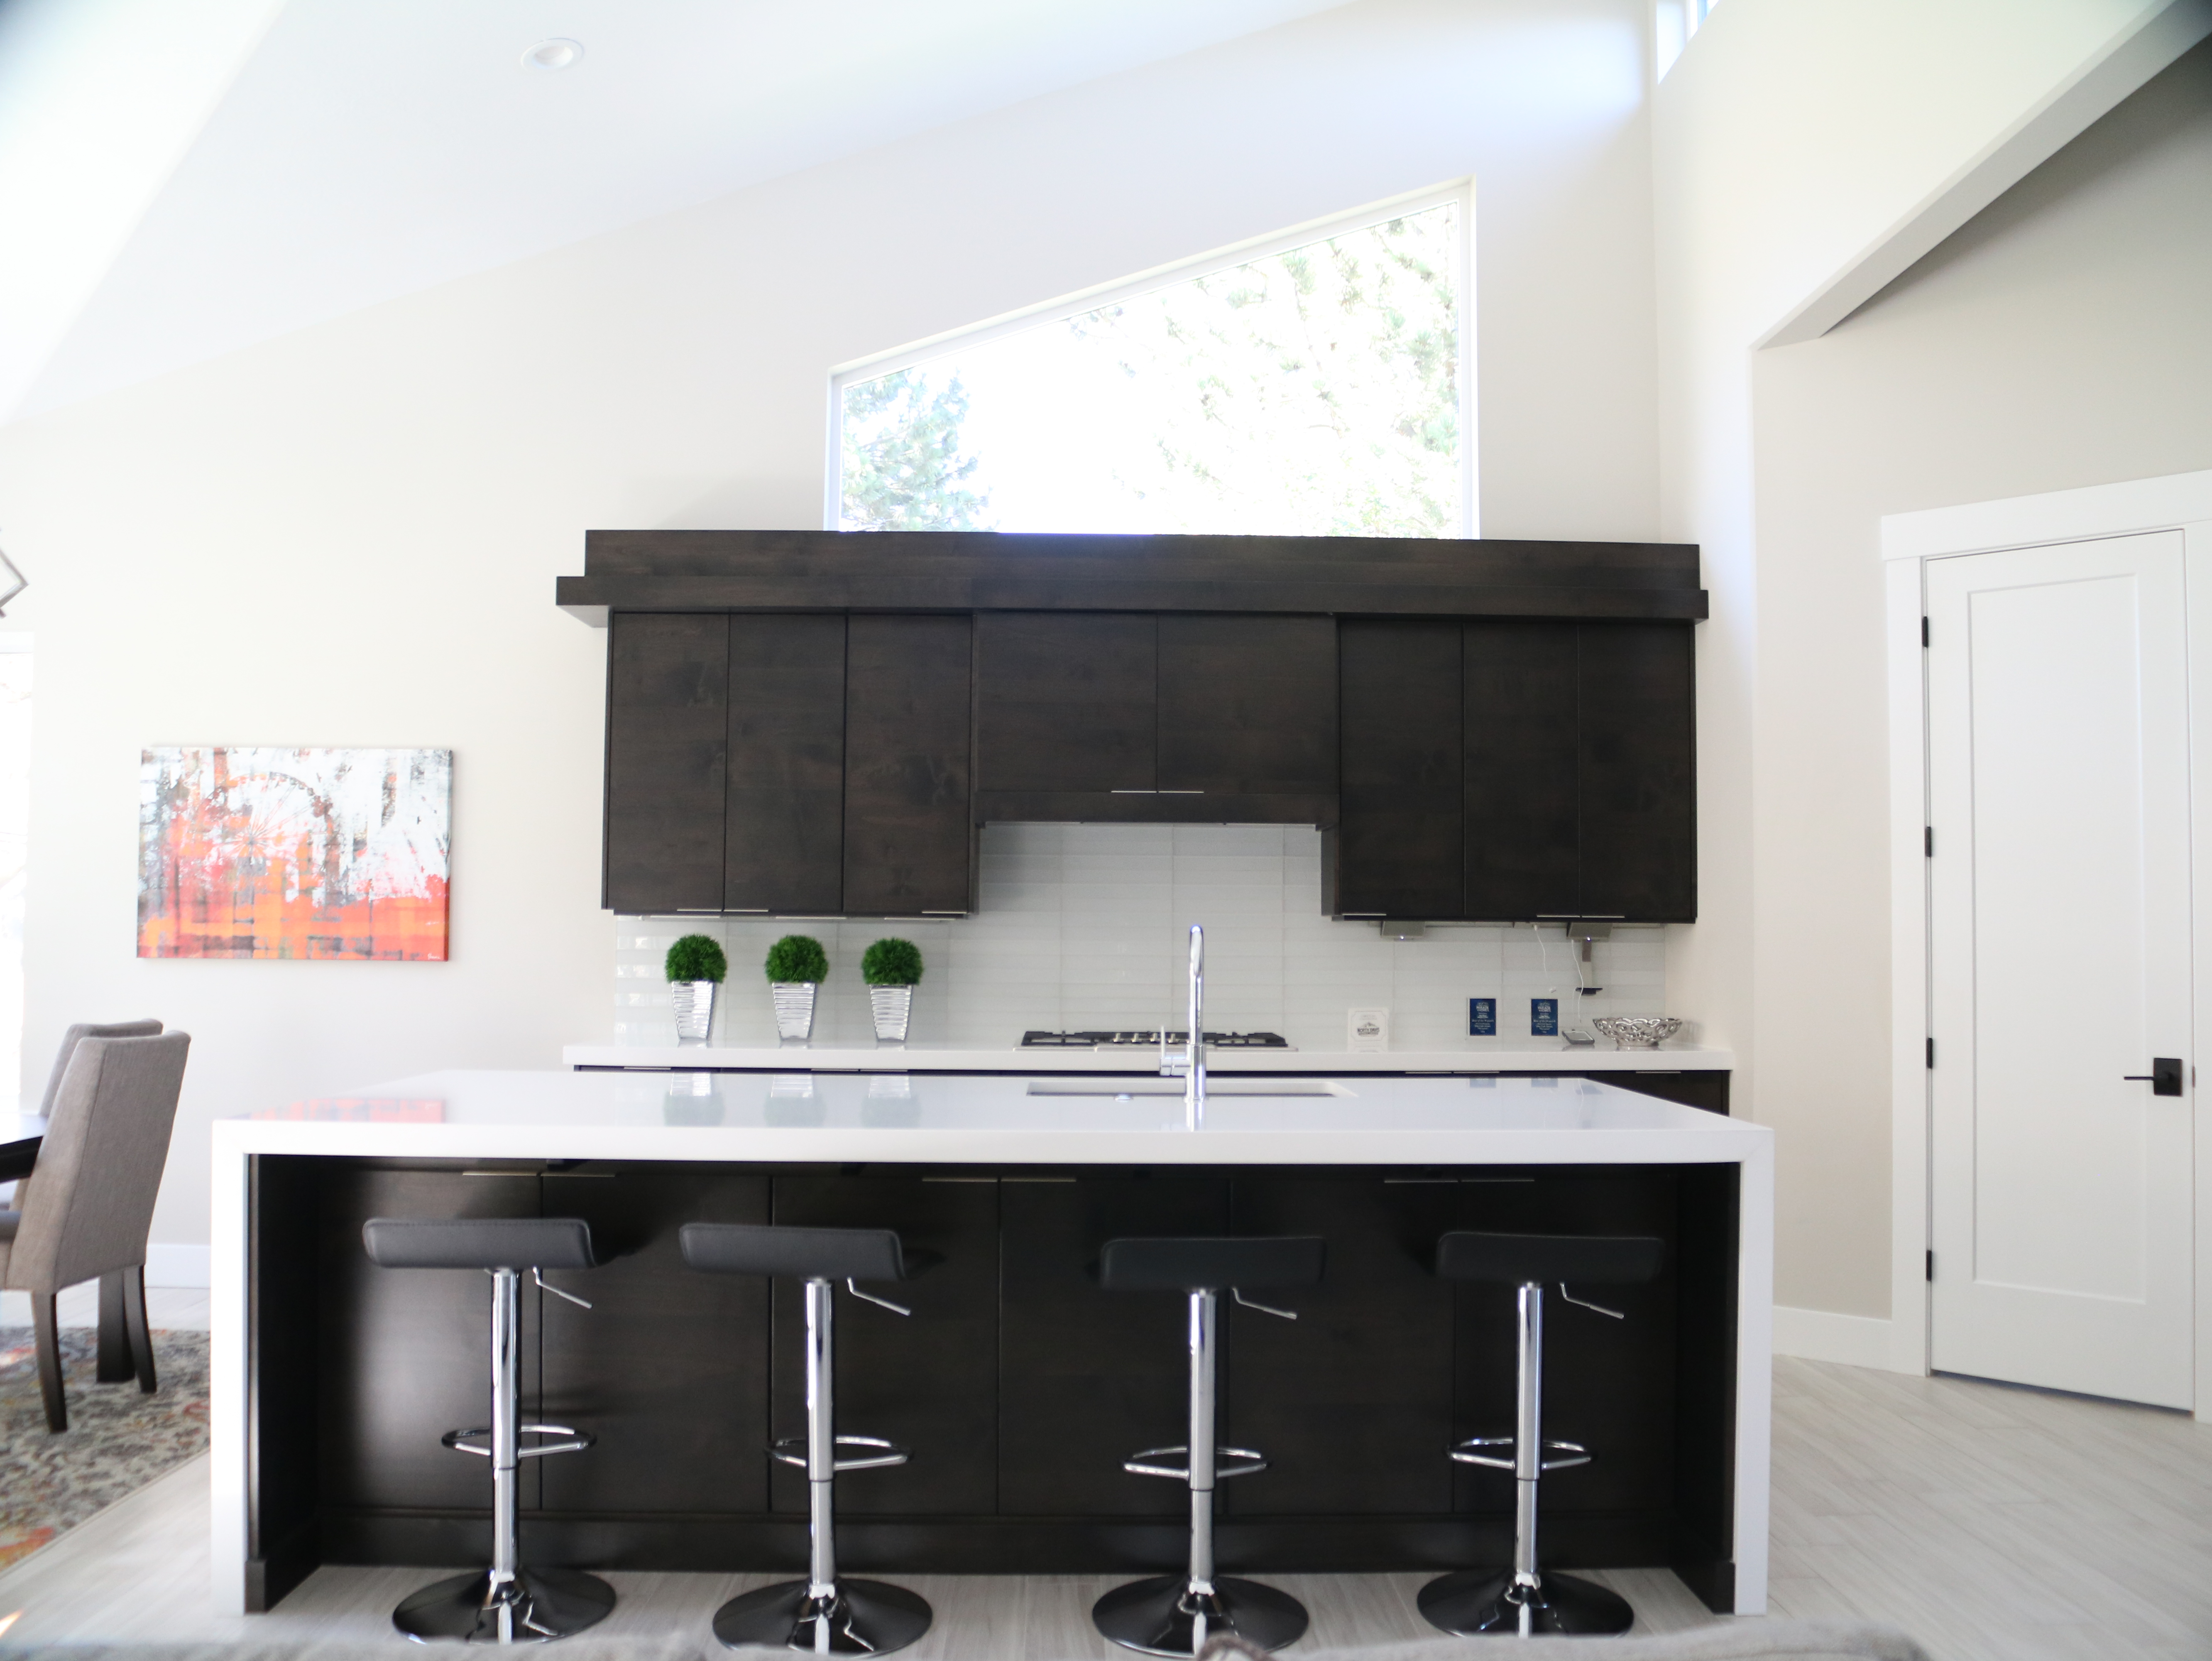 Ace kitchen direct cabinets - Cabinet Natural Stone Counter Tops Care Maintenance